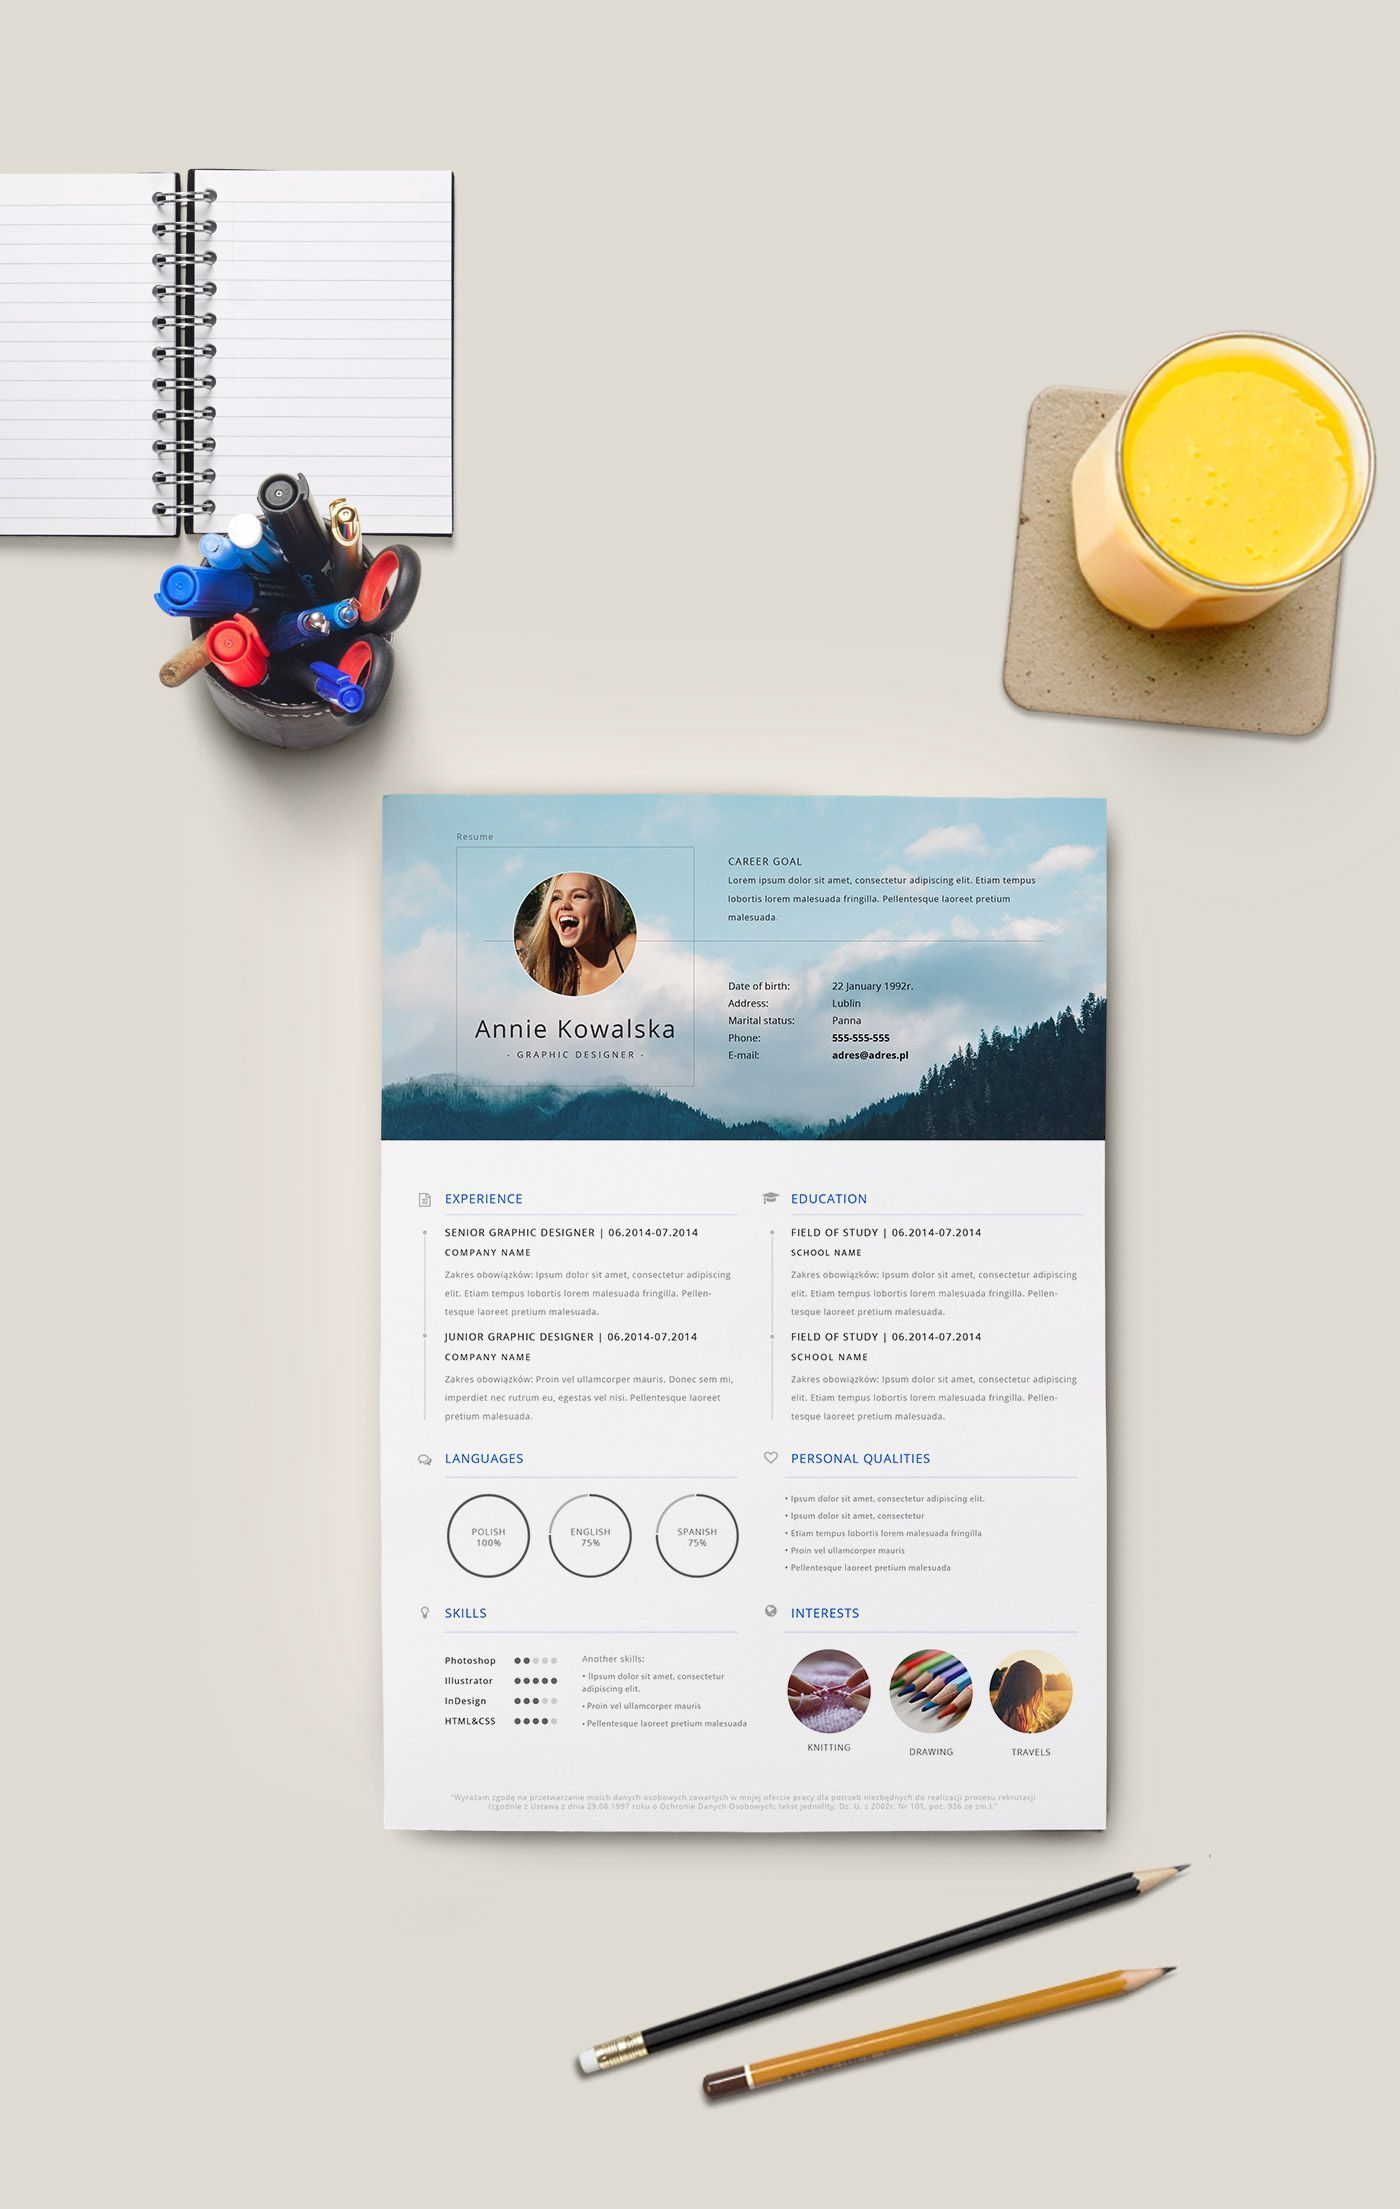 Free resume to download and edit._Darmowe CV do